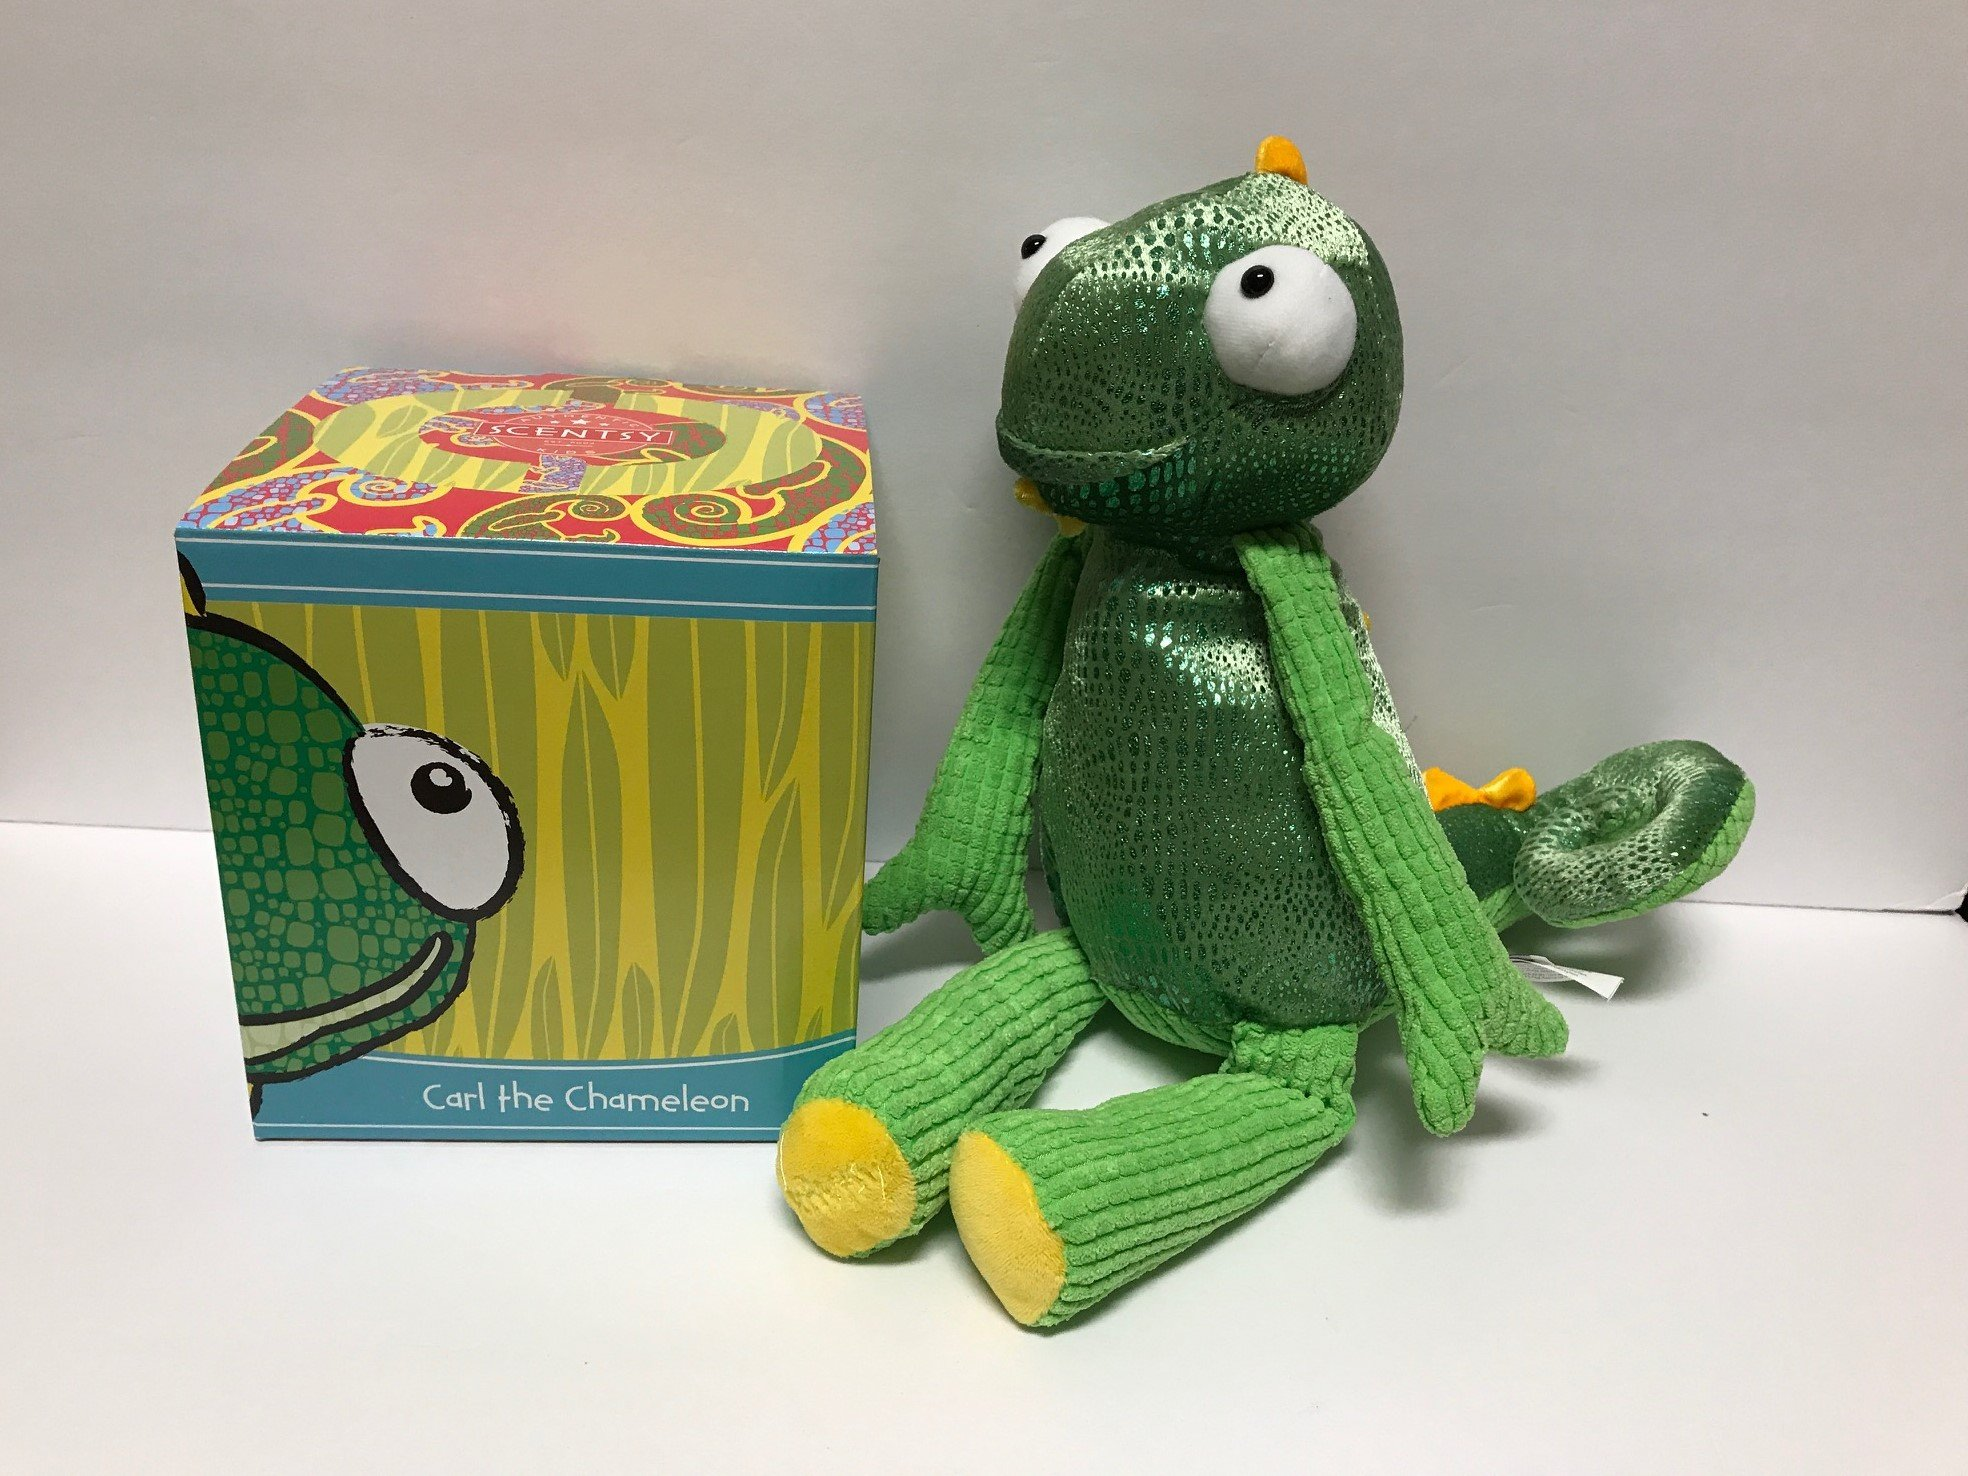 Scentsy Buddy Carl the Chameleon